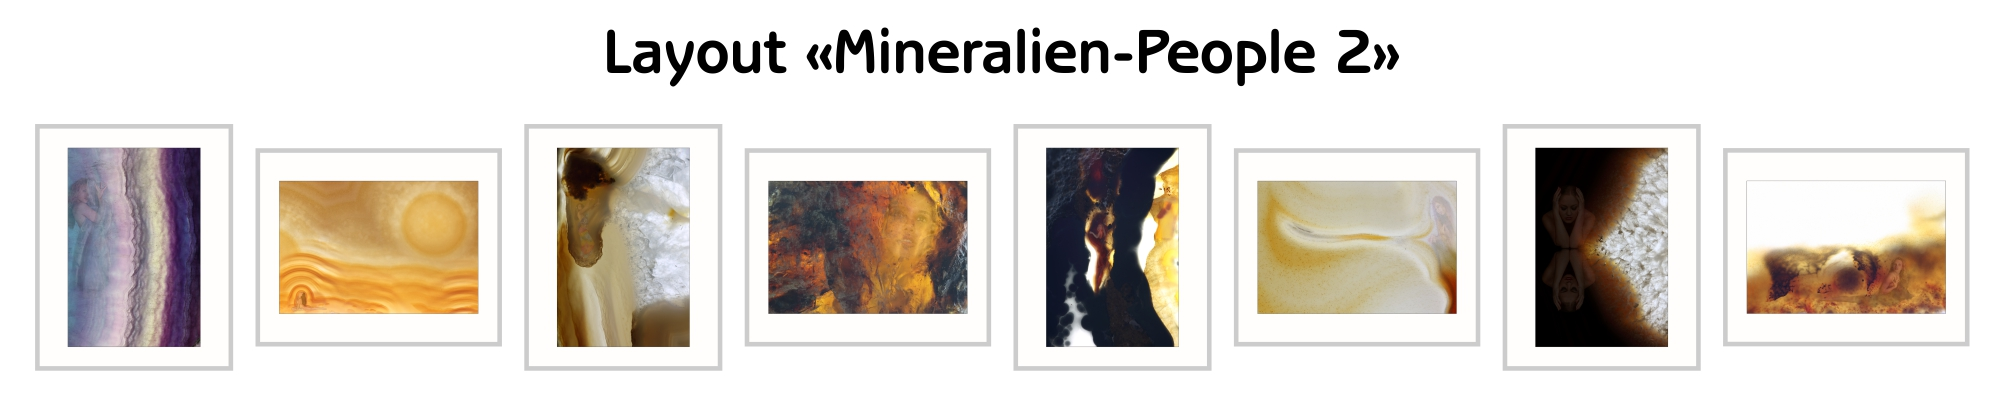 image-10217780-Layout-Mineralien-People-2-d3d94.jpg